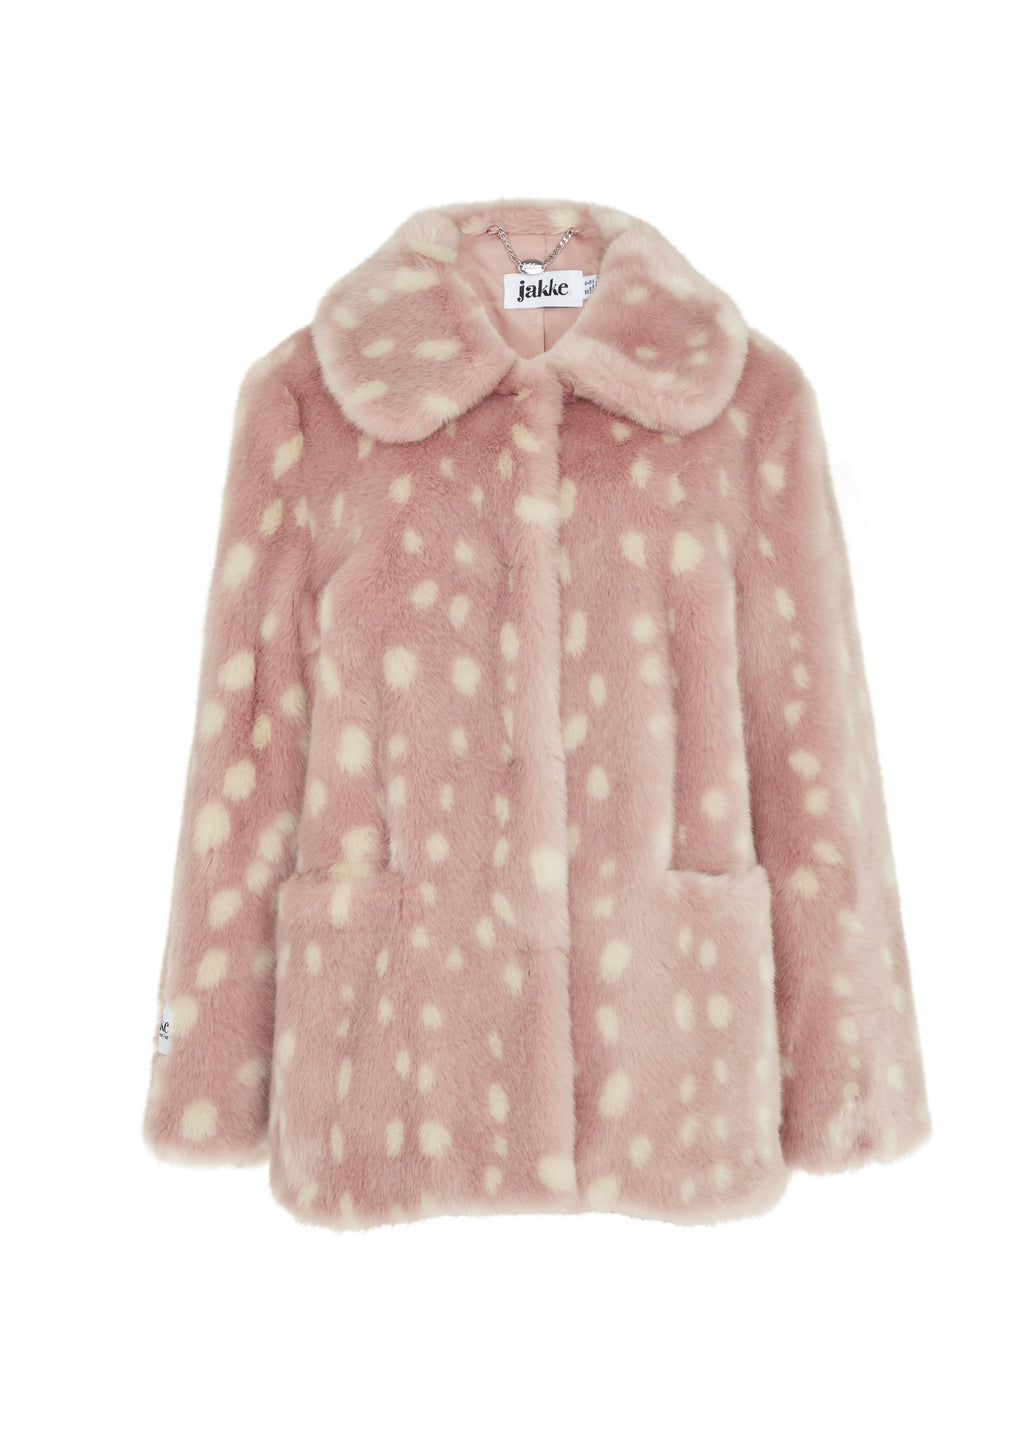 Rent Jakke Tilly Pink Faux Fur Jacket from Rotaro